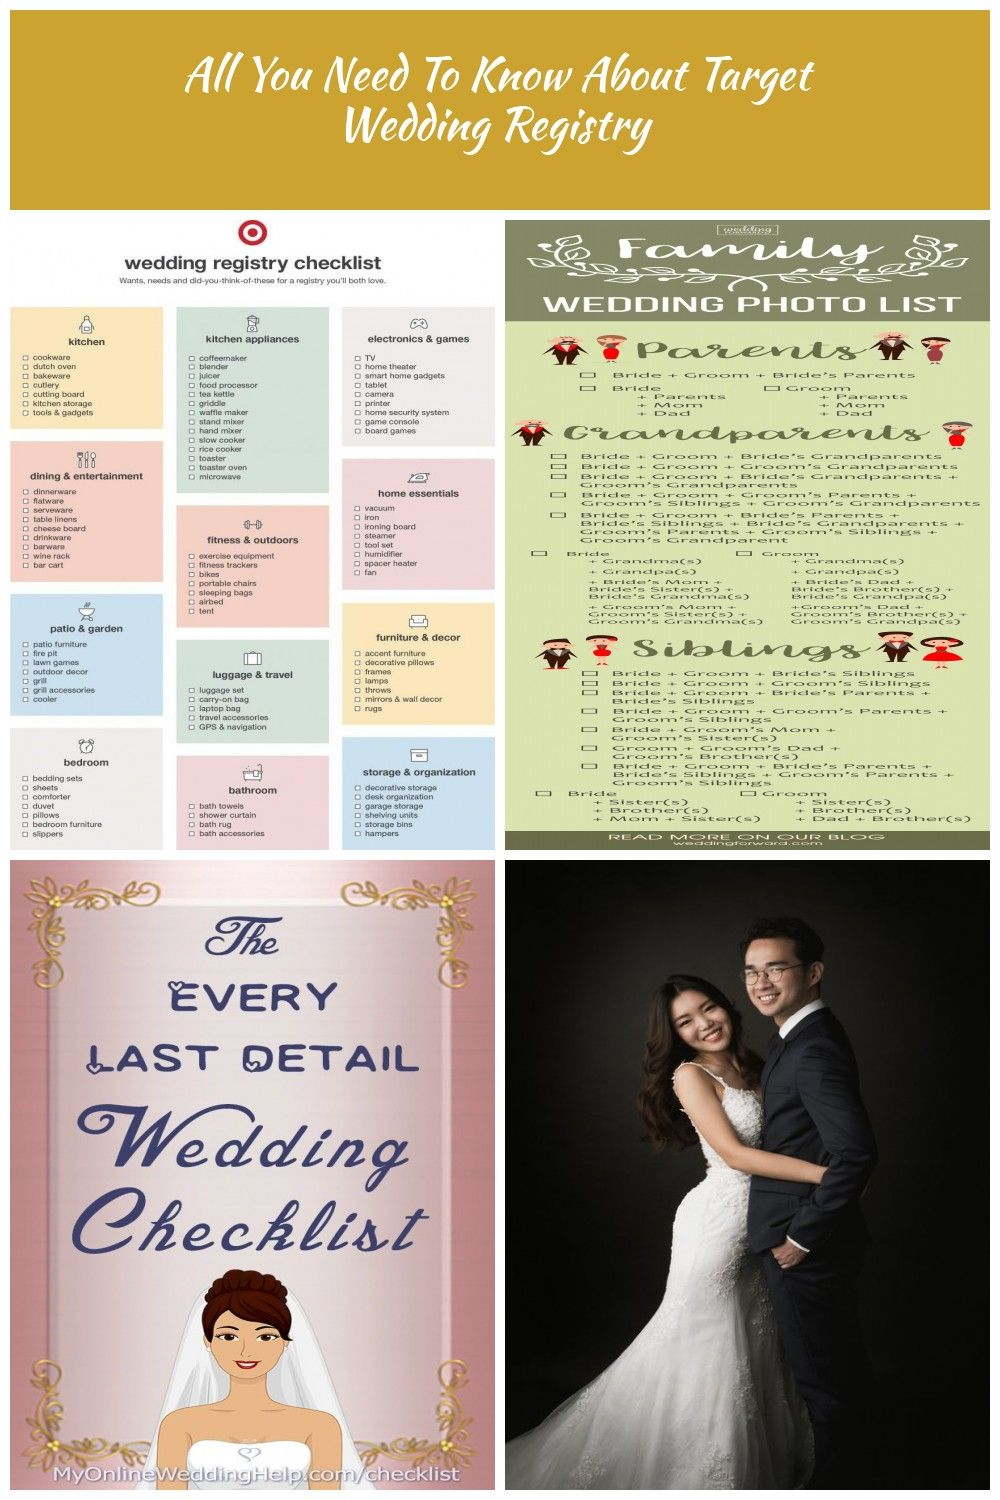 Target Wedding Registry Checklist Wedding Checklist All You Need To Know About Target Wed Target Wedding Registry Wedding Registry Checklist Wedding Photo List